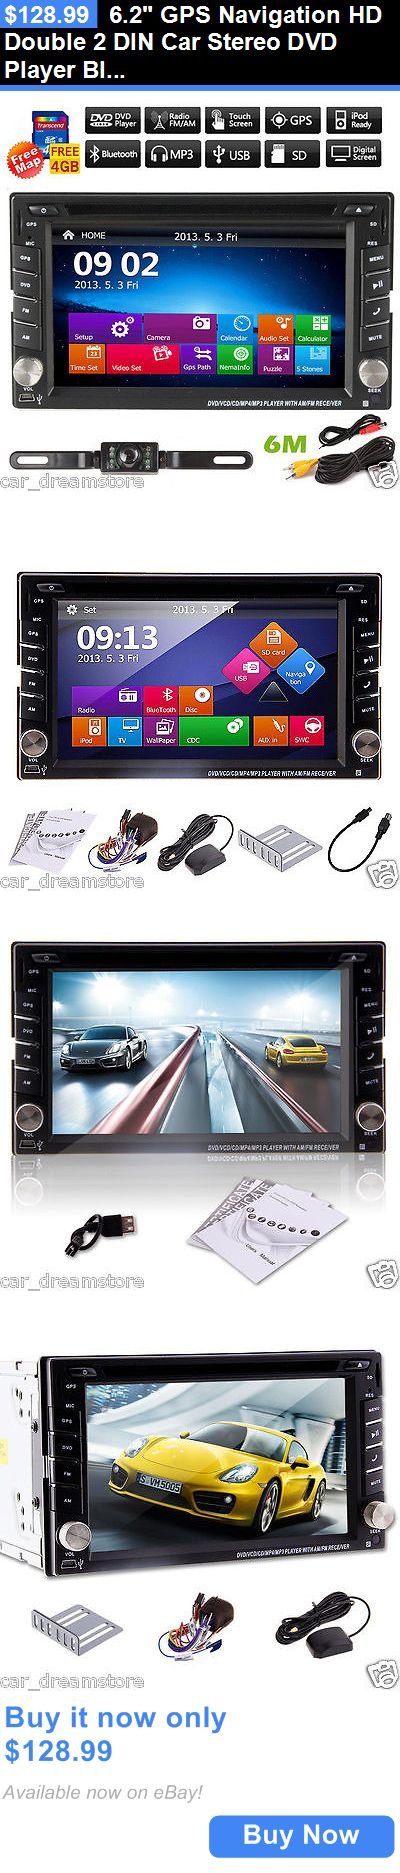 Vehicle Electronics And GPS: 6.2 Gps Navigation Hd Double 2 Din Car Stereo Dvd Player Bluetooth Ipod Mp3 Tv BUY IT NOW ONLY: $128.99